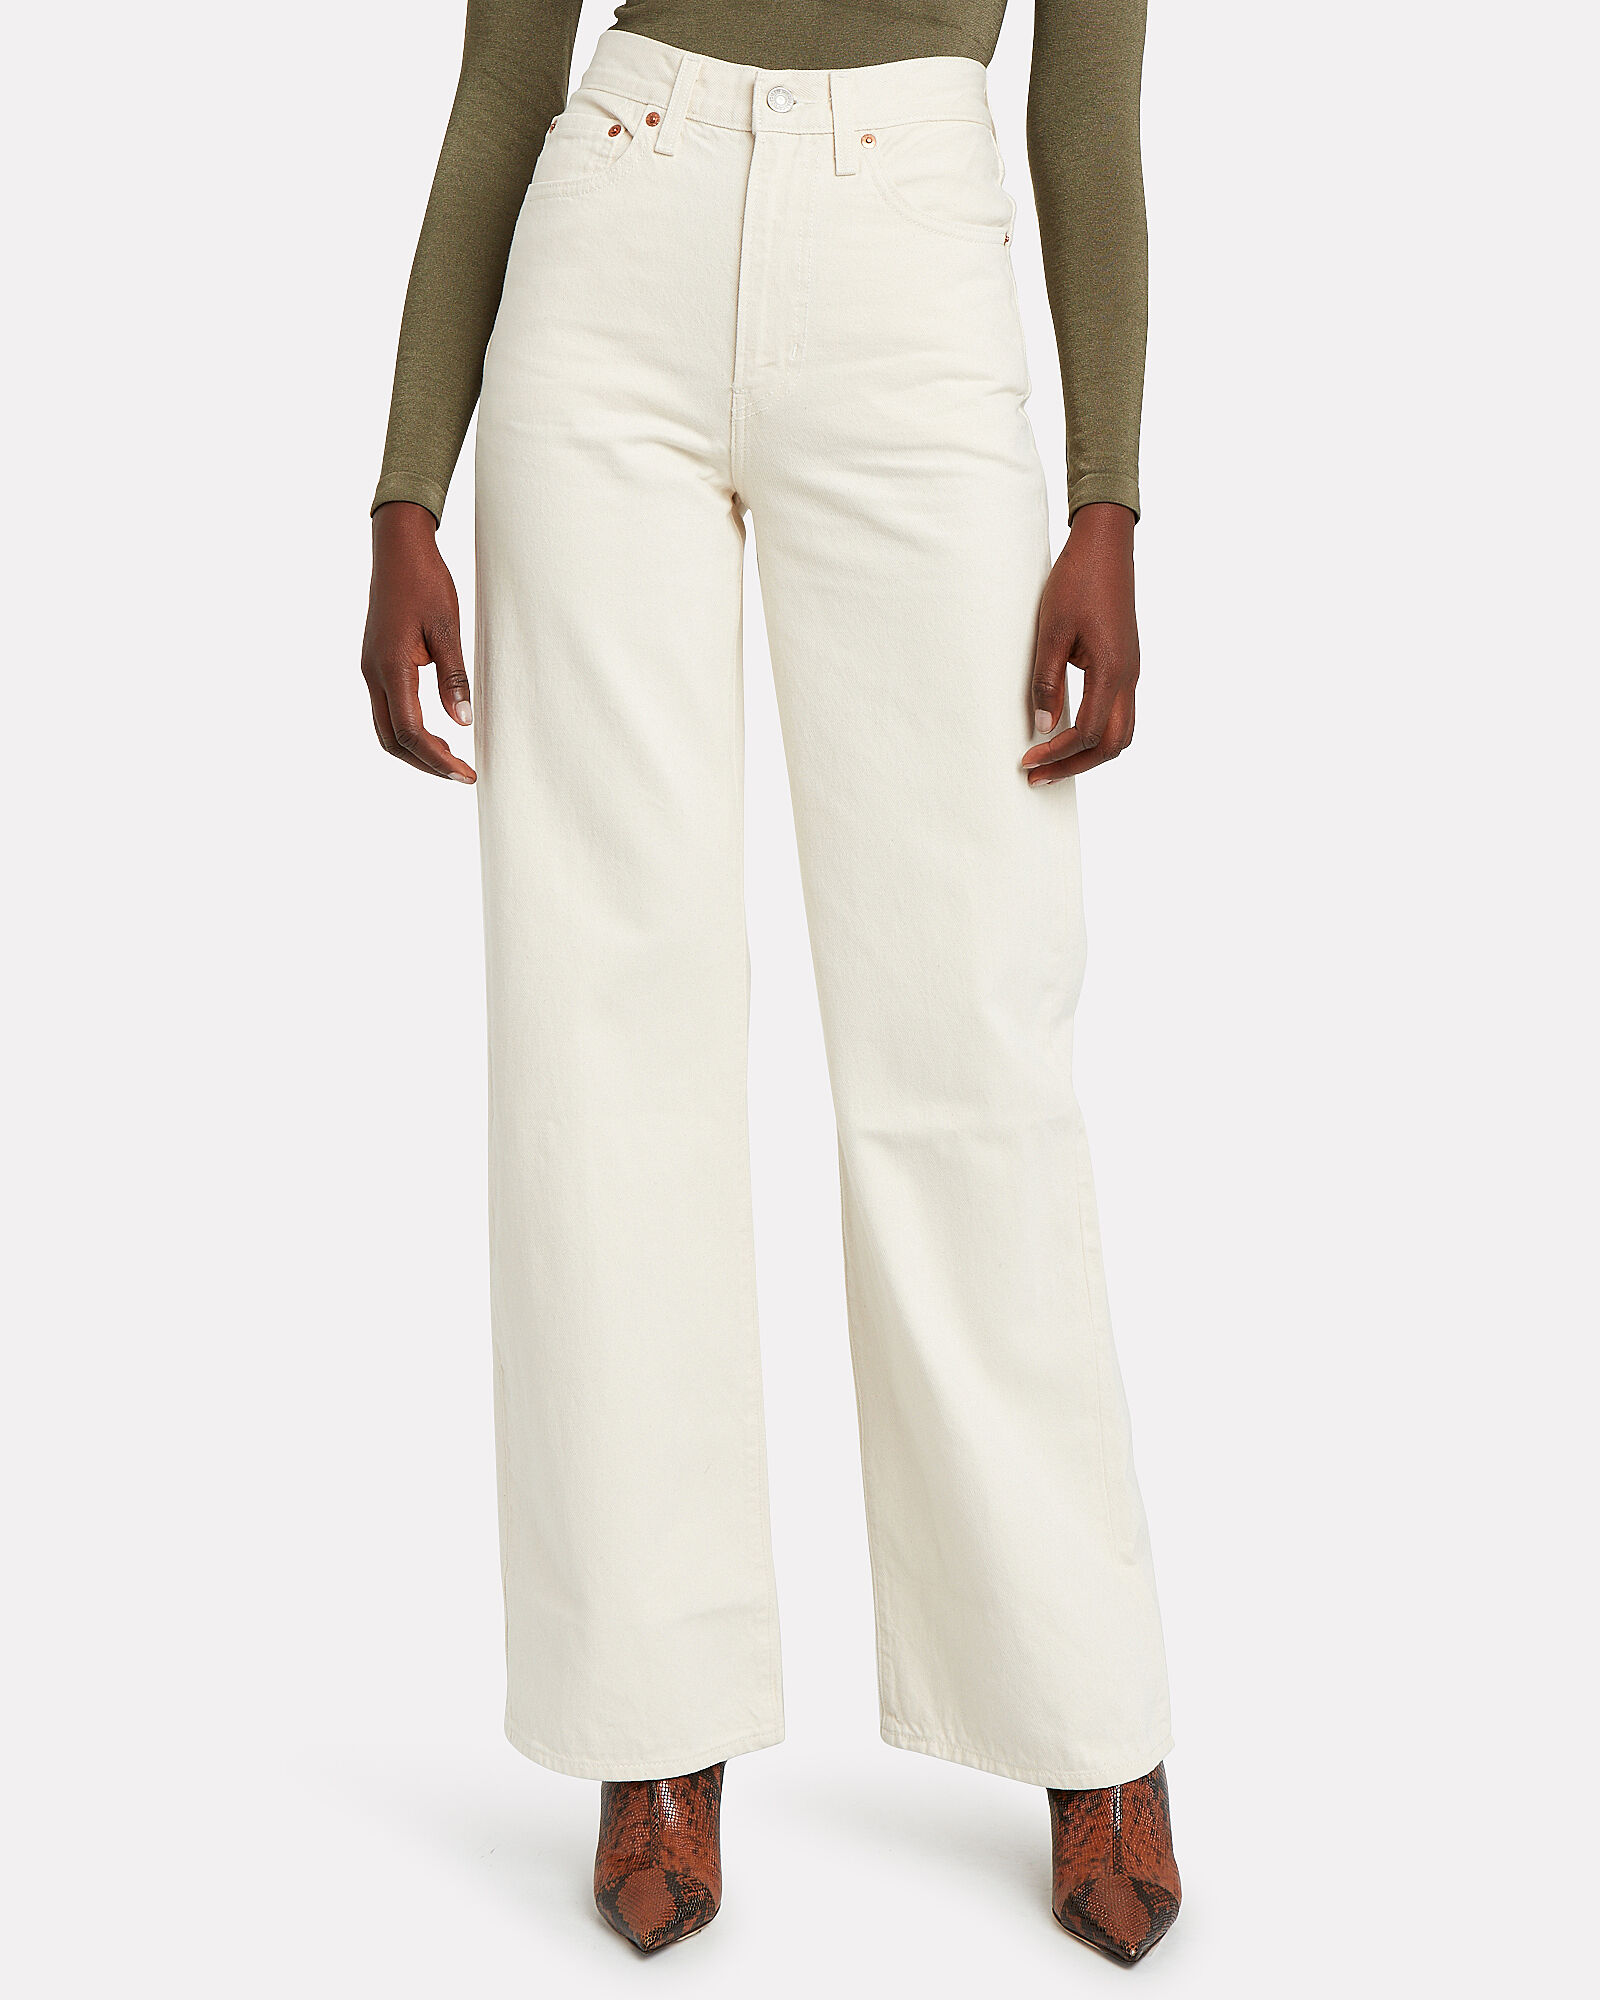 Ribcage Wide Leg Jeans, IVORY, hi-res